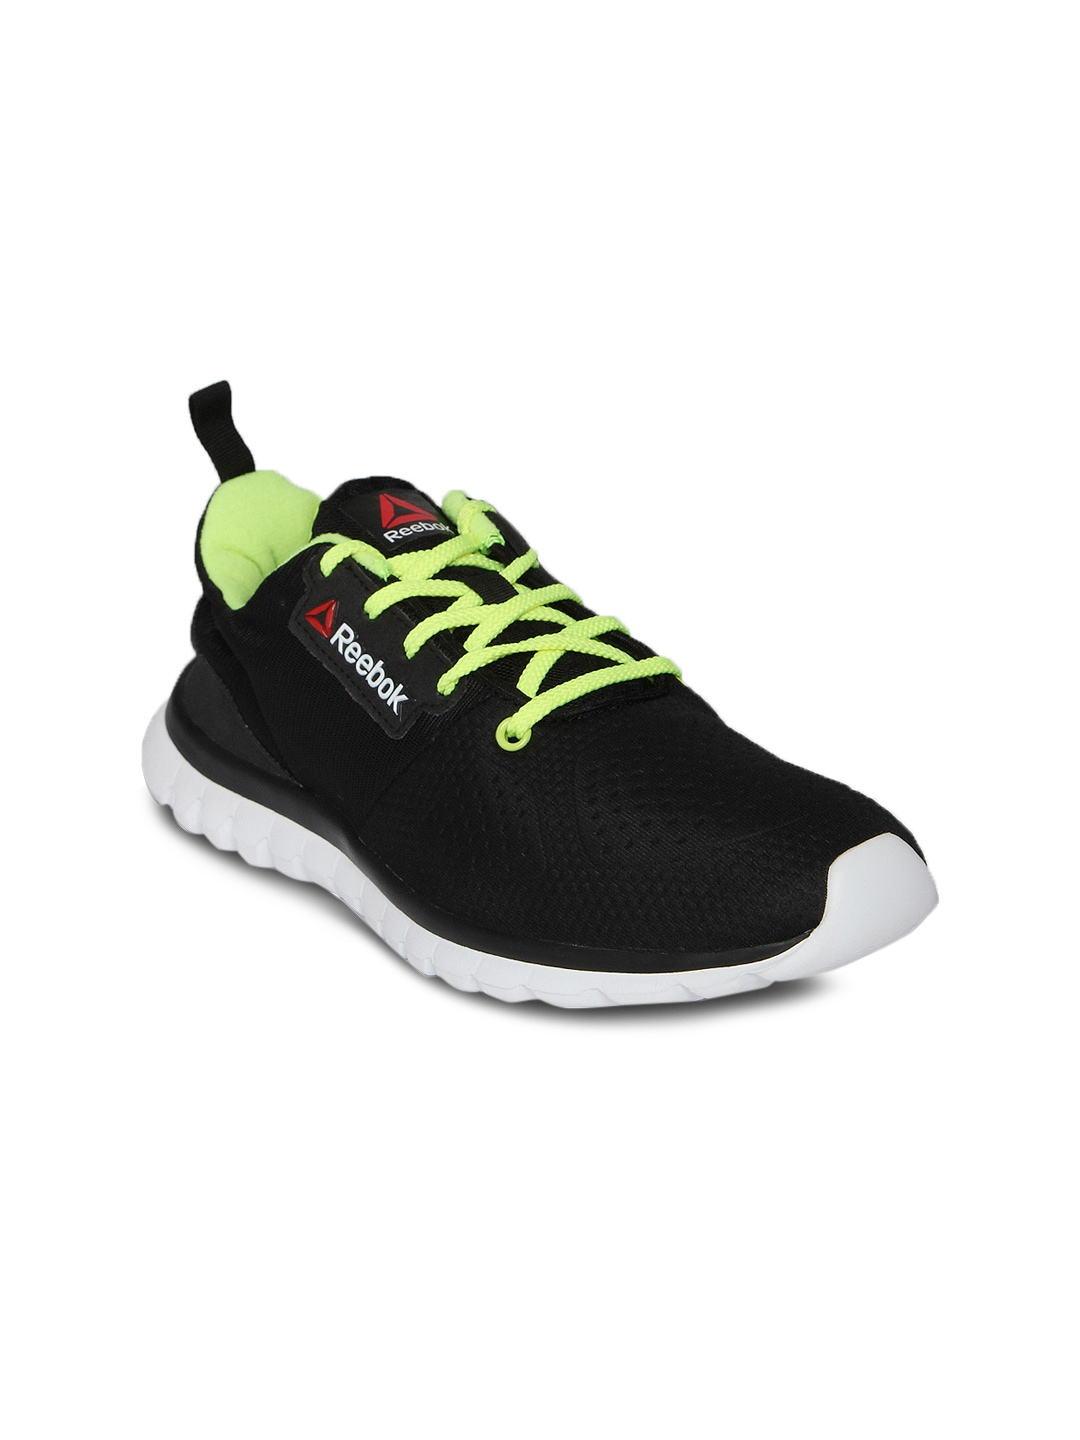 8118e4cbc869 Reebok bd5818 Women Black Sublite Aim 2 0 Running Shoes- Price in India